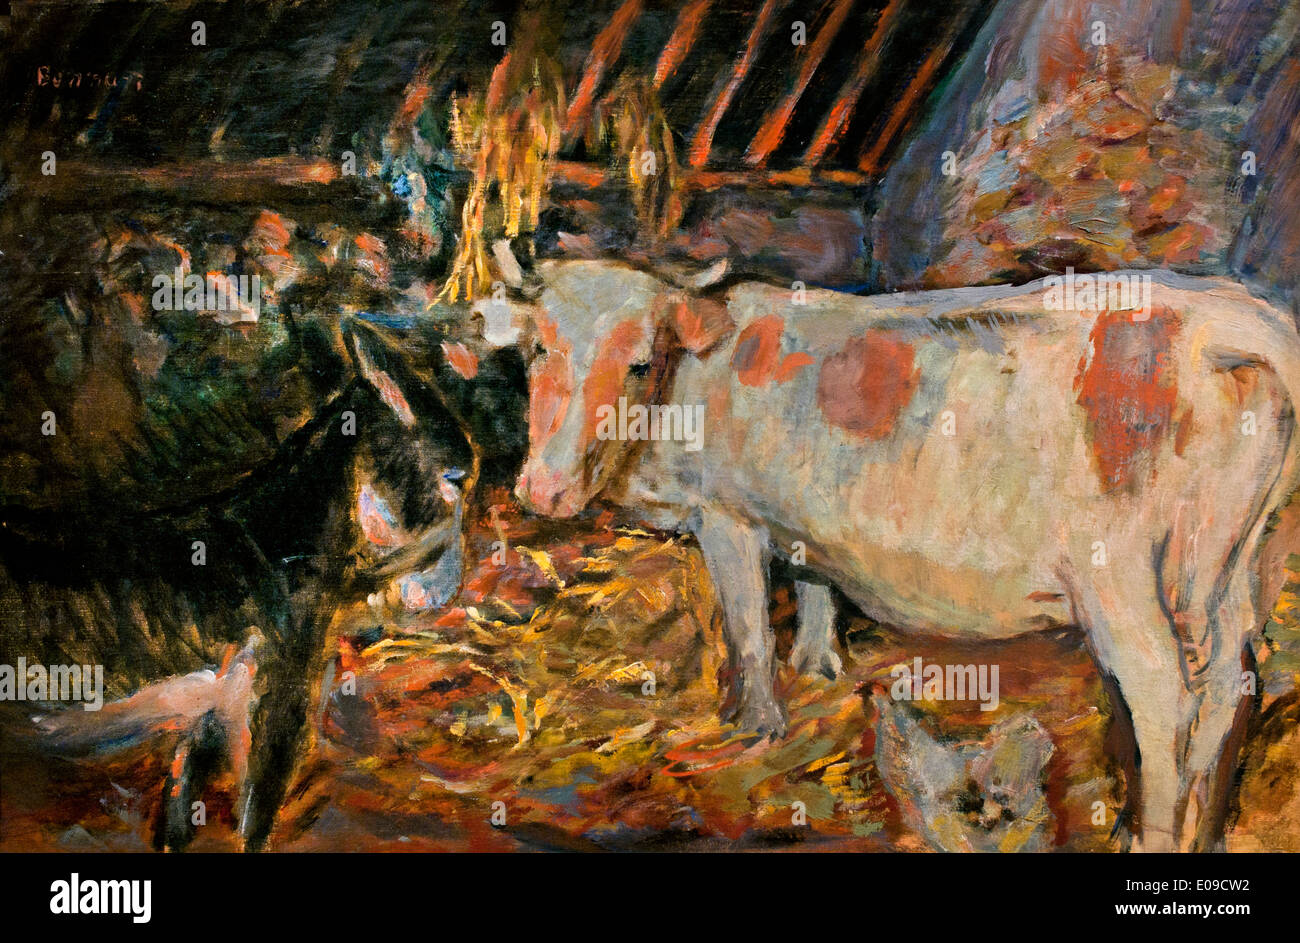 The Barn 1912 The cow in the Stable by Pierre Bonnard France French 1867 - 1947 - Stock Image